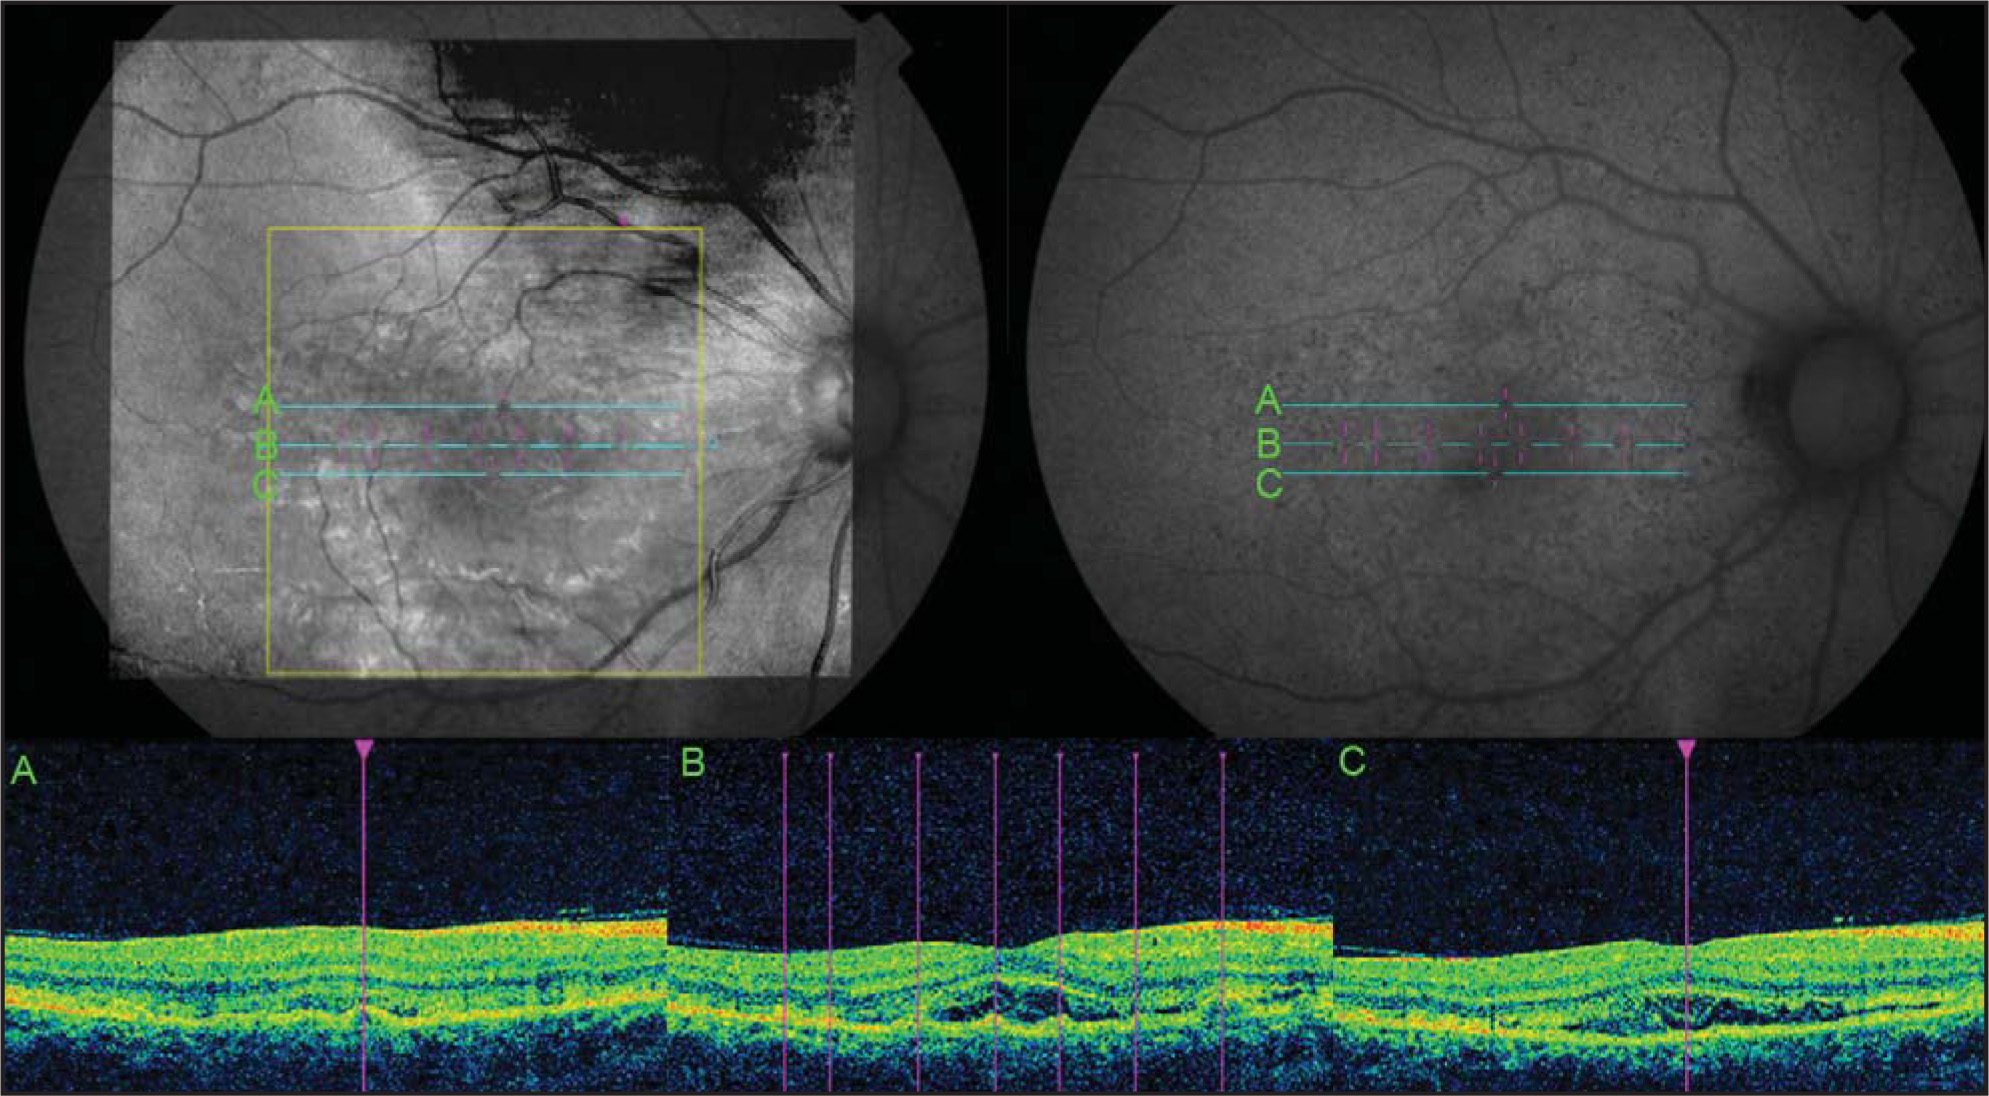 Manually registered fundus autofluorescence (FAF) and infrared images (registered to optical coherence tomography [OCT] fundus image). FAF images (upper right) were manually registered to the infrared image of the high-definition OCT (upper left) using blood vessels and the optic nerve as points of reference. The OCT B-scans were then studied to identify the areas of subretinal hyperreflective membrane or retinal pigment epithelial (RPE) detachment and evaluate if they correspond to hyperautofluorescent or hypoautofluorescent areas. Hypoautofluorescent areas were also evaluated for corresponding changes on the OCT. Line A reveals that hypoautofluorescent spots correspond to RPE detachments and disruptions. Line B shows that RPE detachments and disruptions correspond to hypoautofluorescent dots on the FAF of varying intensity. Line C reveals that the hyperreflective membrane under the retina does not correspond to any focal hyperautofluorescence on the FAF, although this determination is difficult because the membrane is rather diffuse.